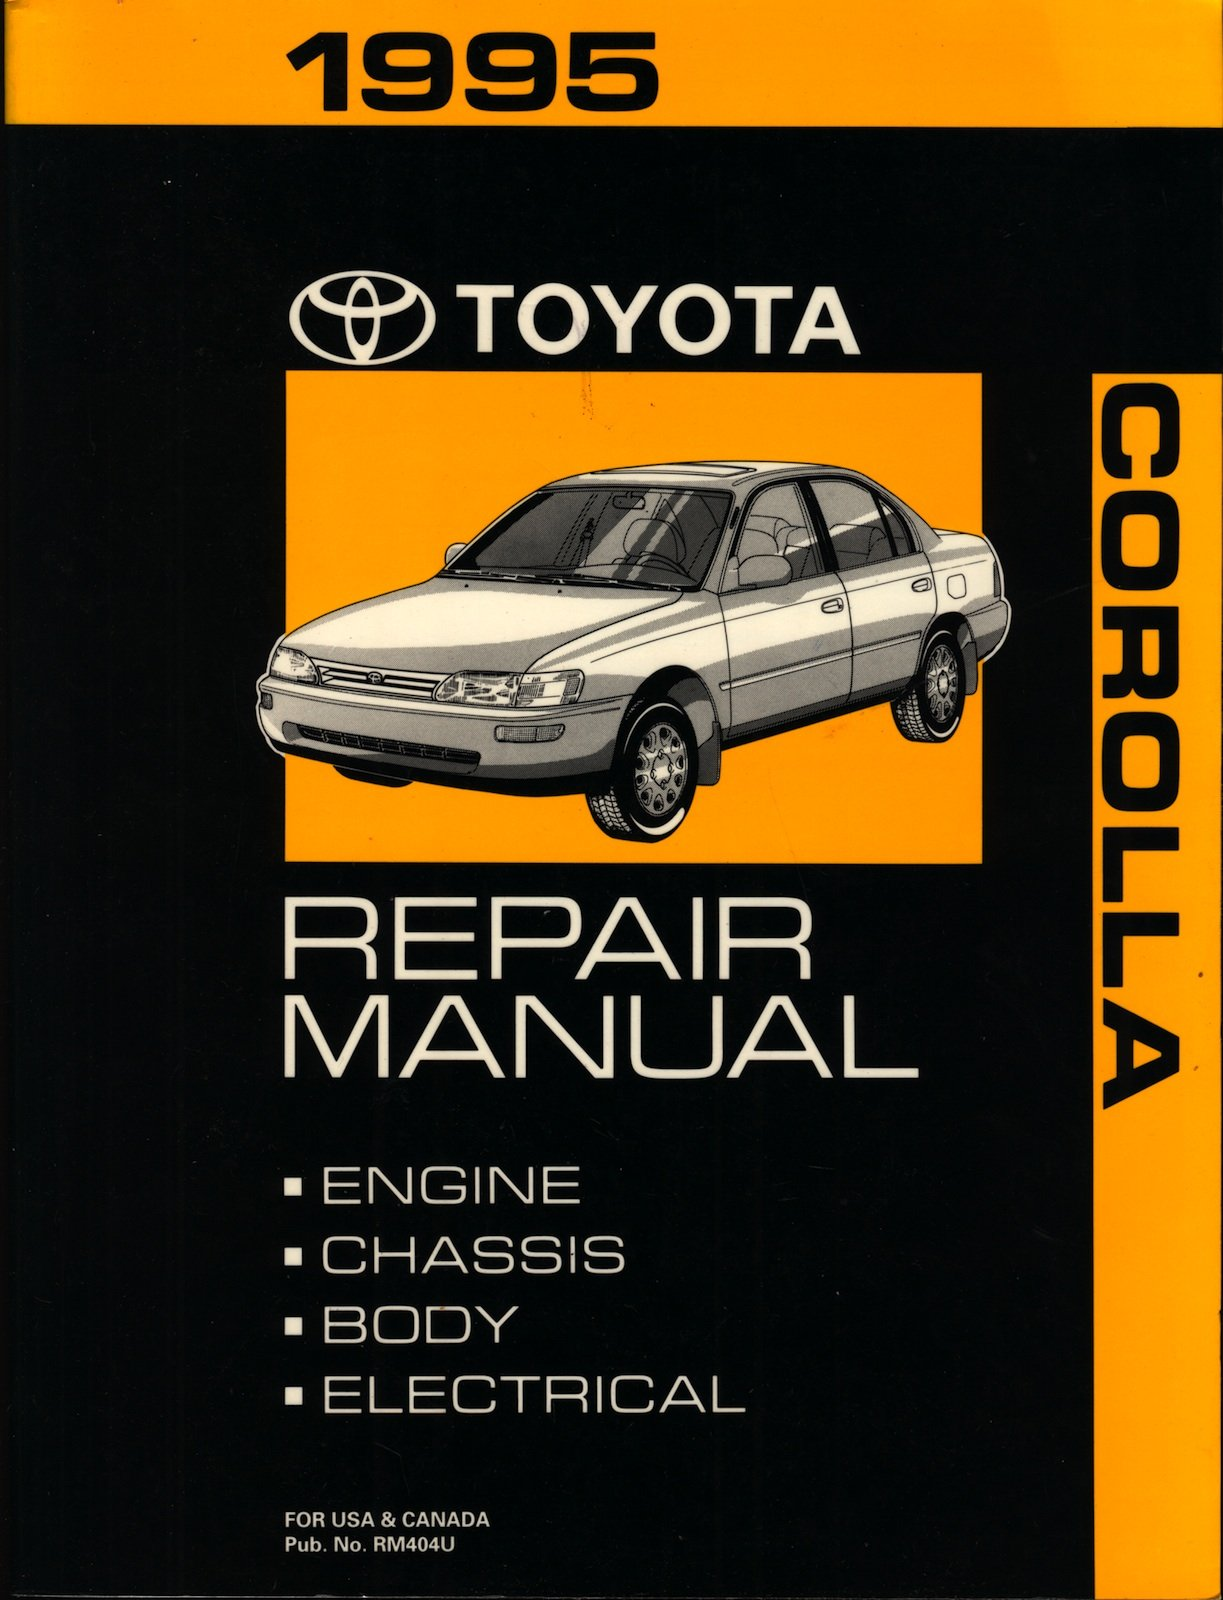 1995 toyota corolla repair manual toyota amazon com books rh amazon com toyota corolla 2014 owners manual download toyota corolla 2014 owners manual download